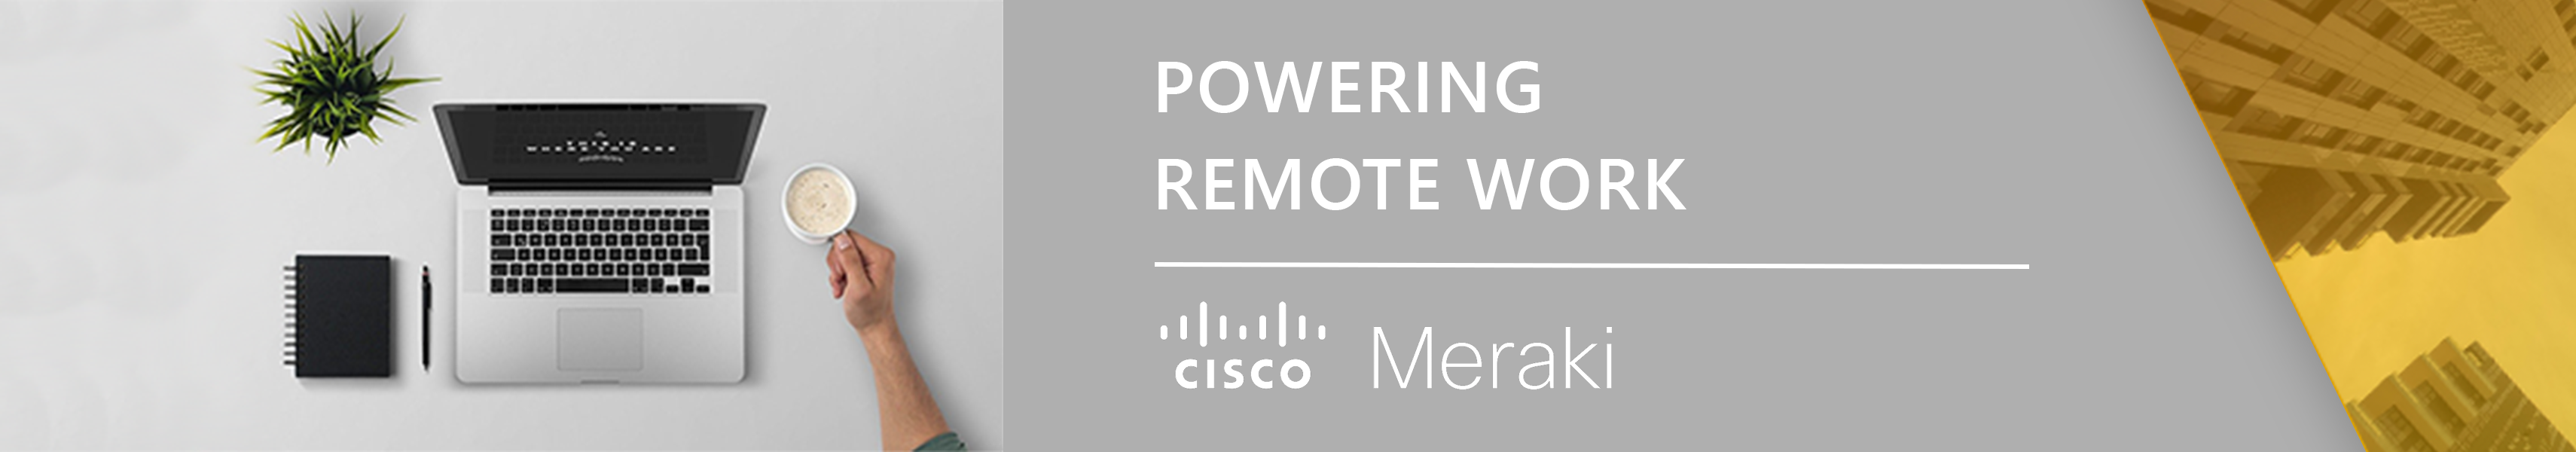 Cisco Meraki Remote Work